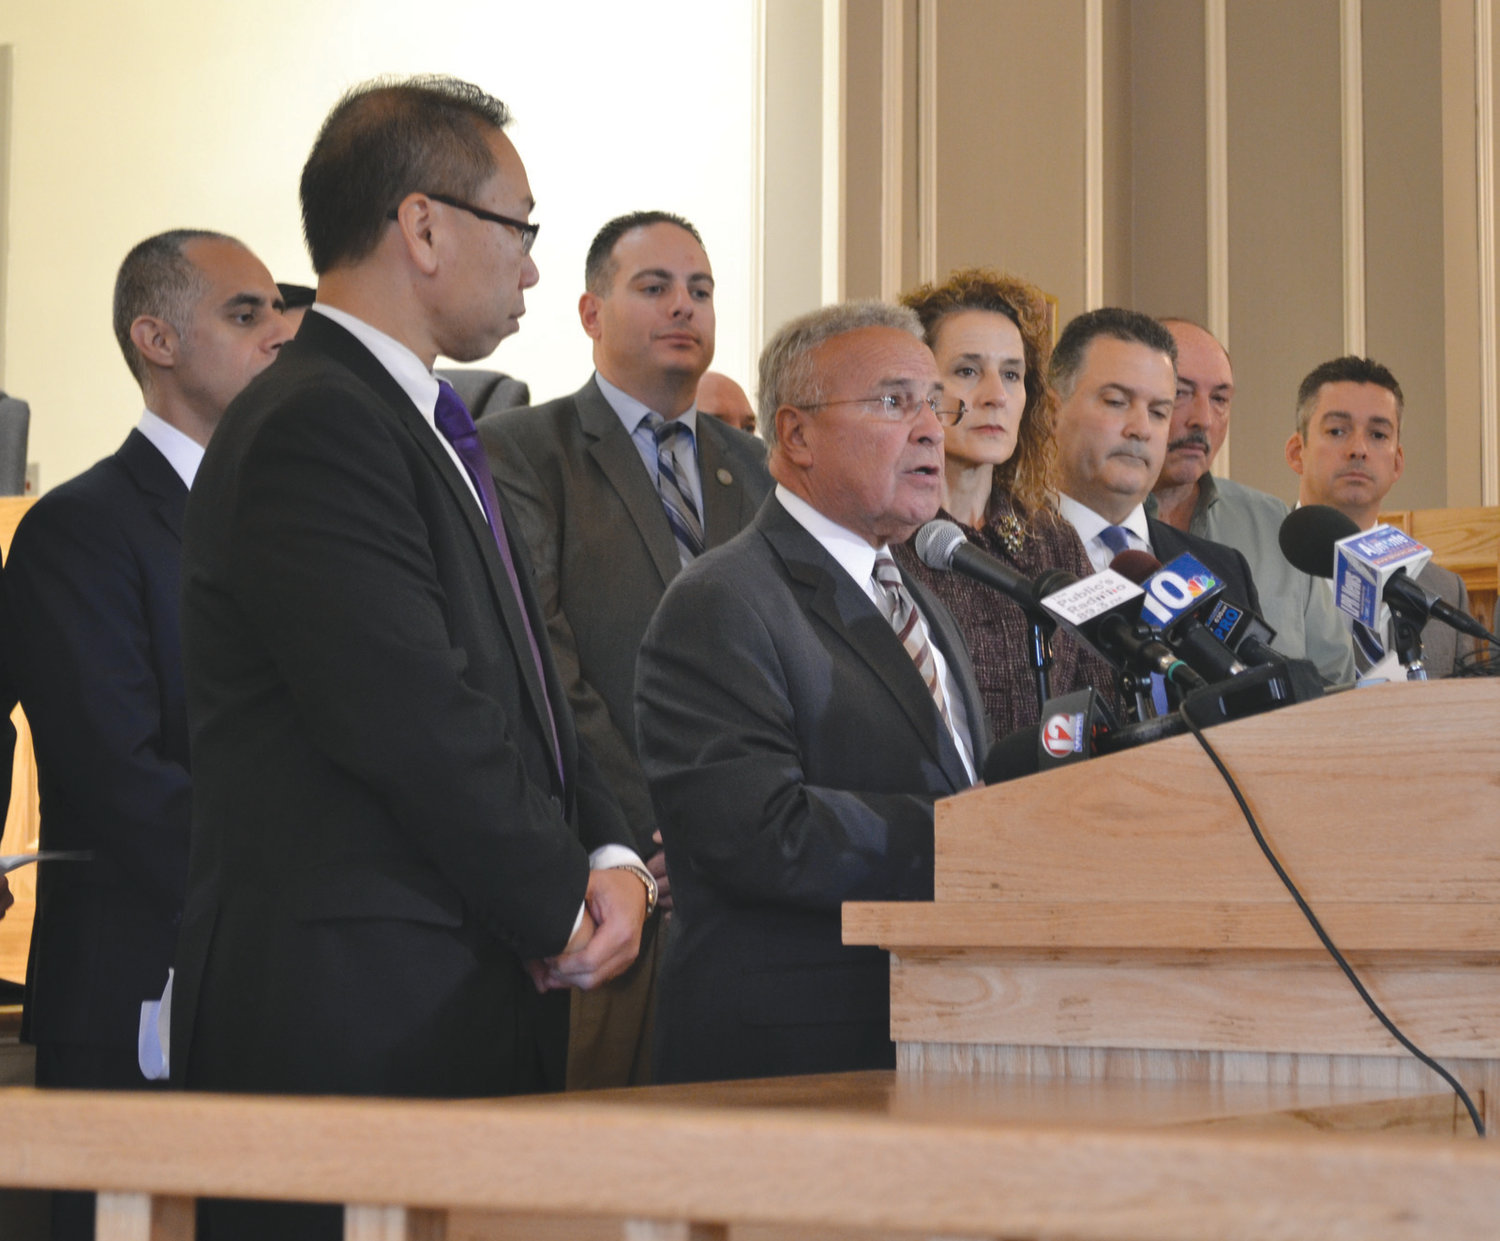 MAKING THEIR CASE: North Providence Mayor Charles Lombardi, who hosted the press conference, was among the local leaders who joined a lawsuit against the contract continuations bill on Tuesday.